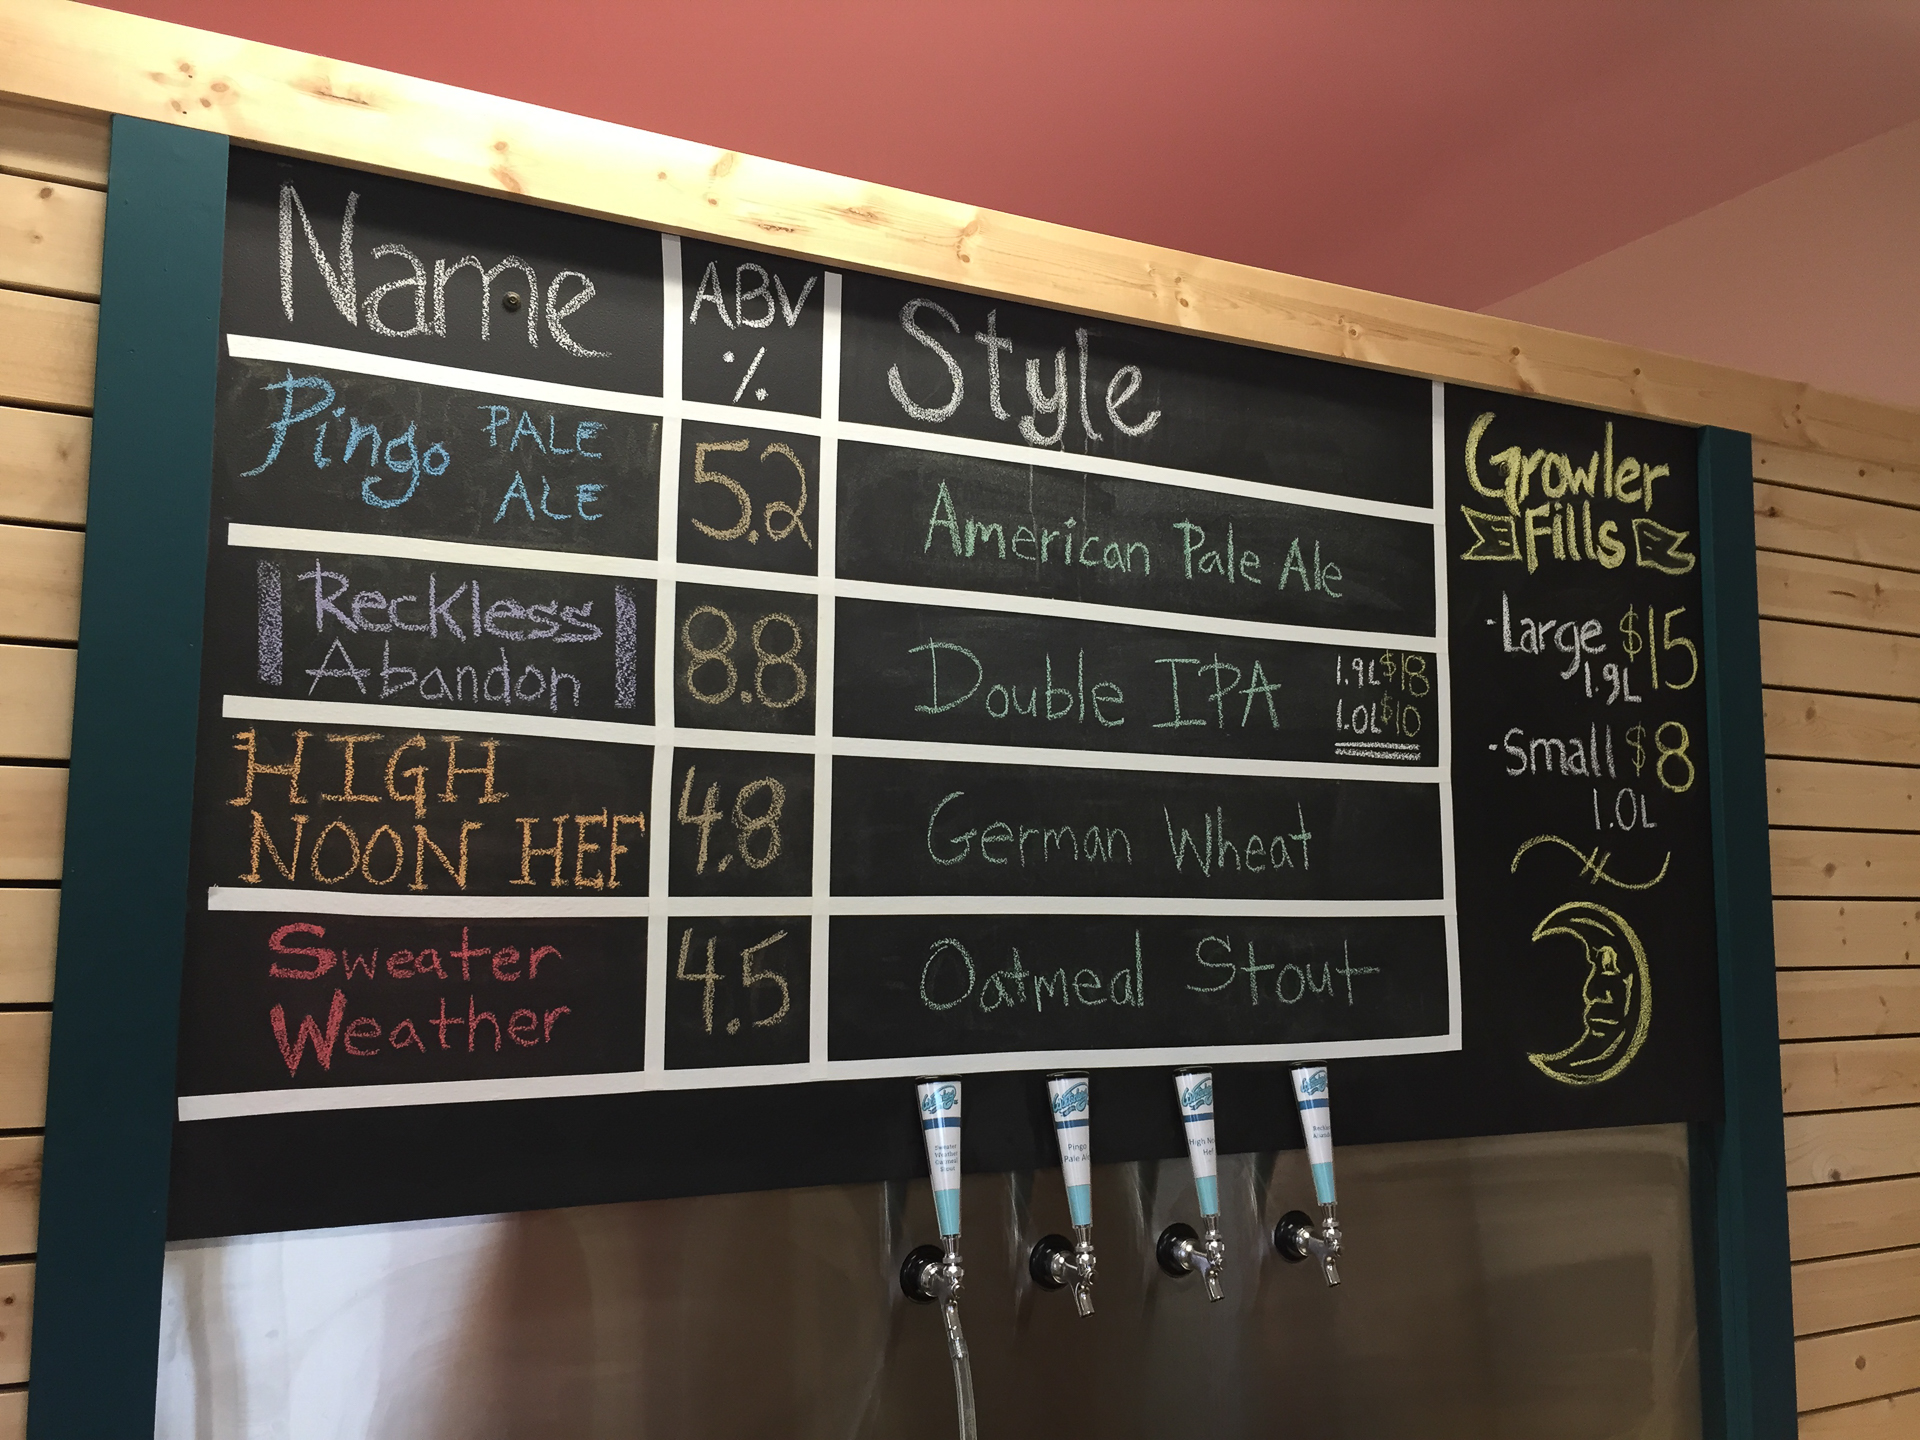 The beer list from Winterlong.